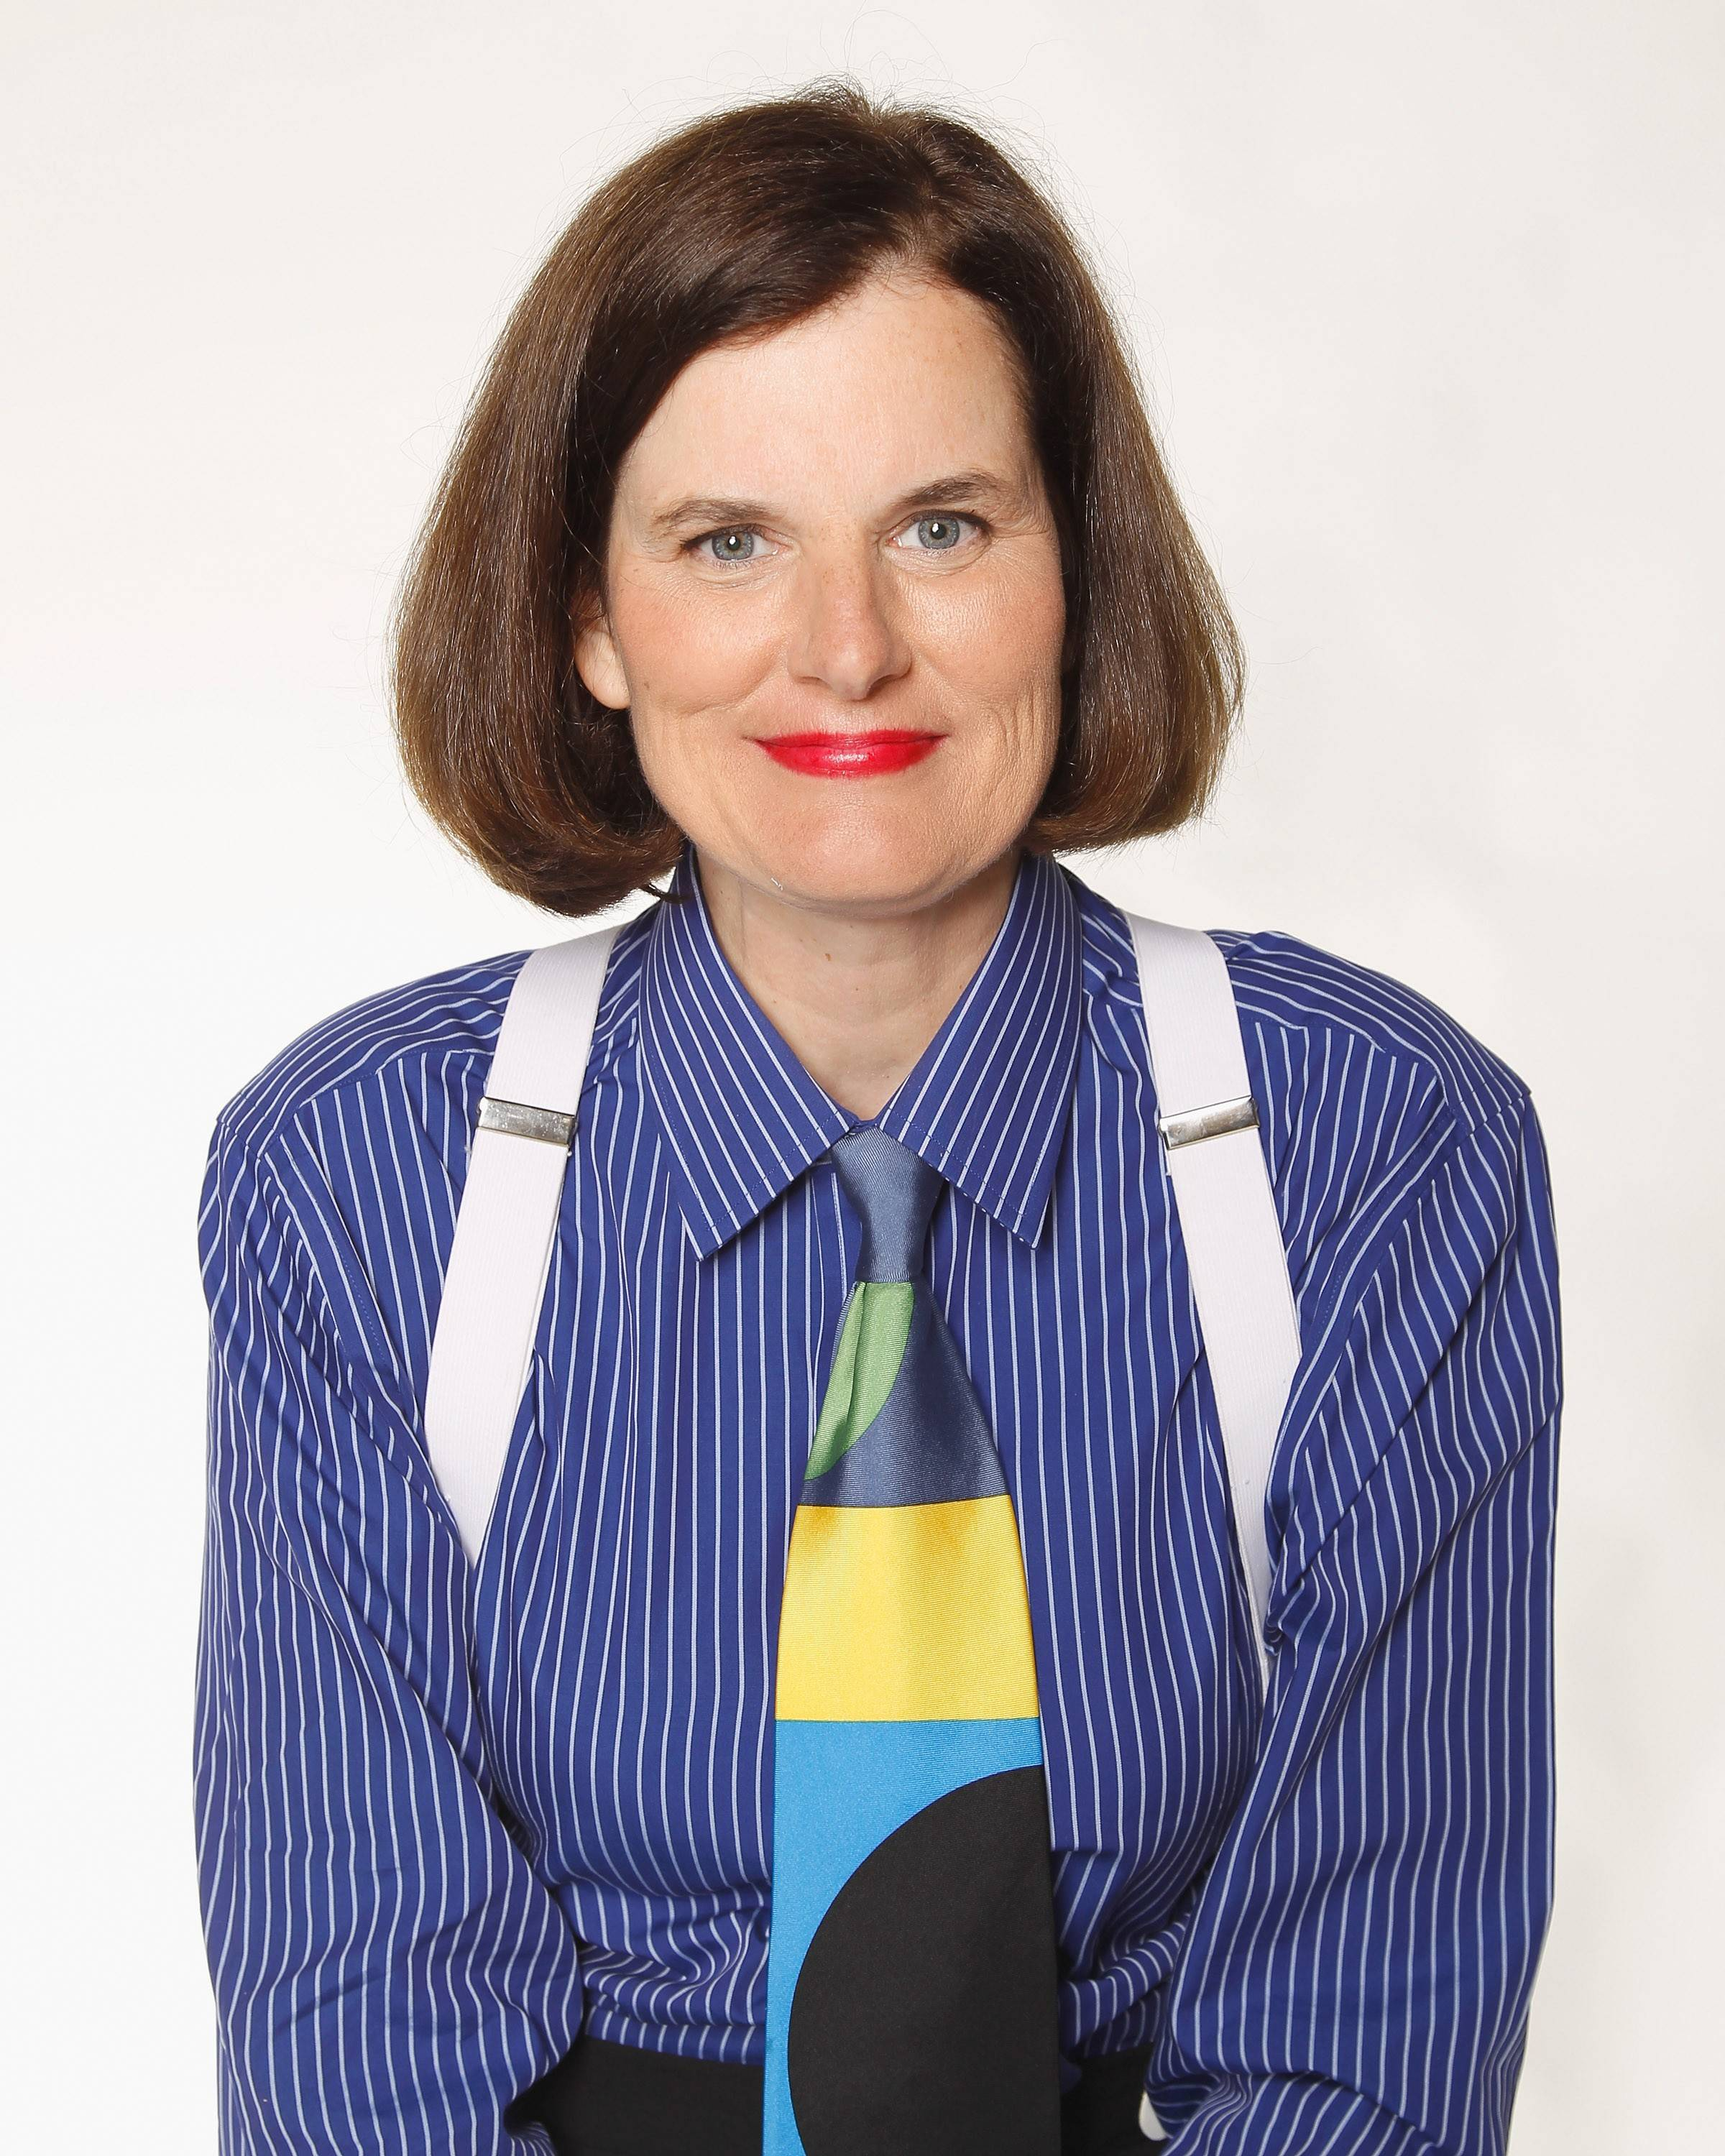 Comedian Paula Poundstone will perform at the Genesee Theatre in Waukegan at 7:30 p.m. Thursday, April 12.